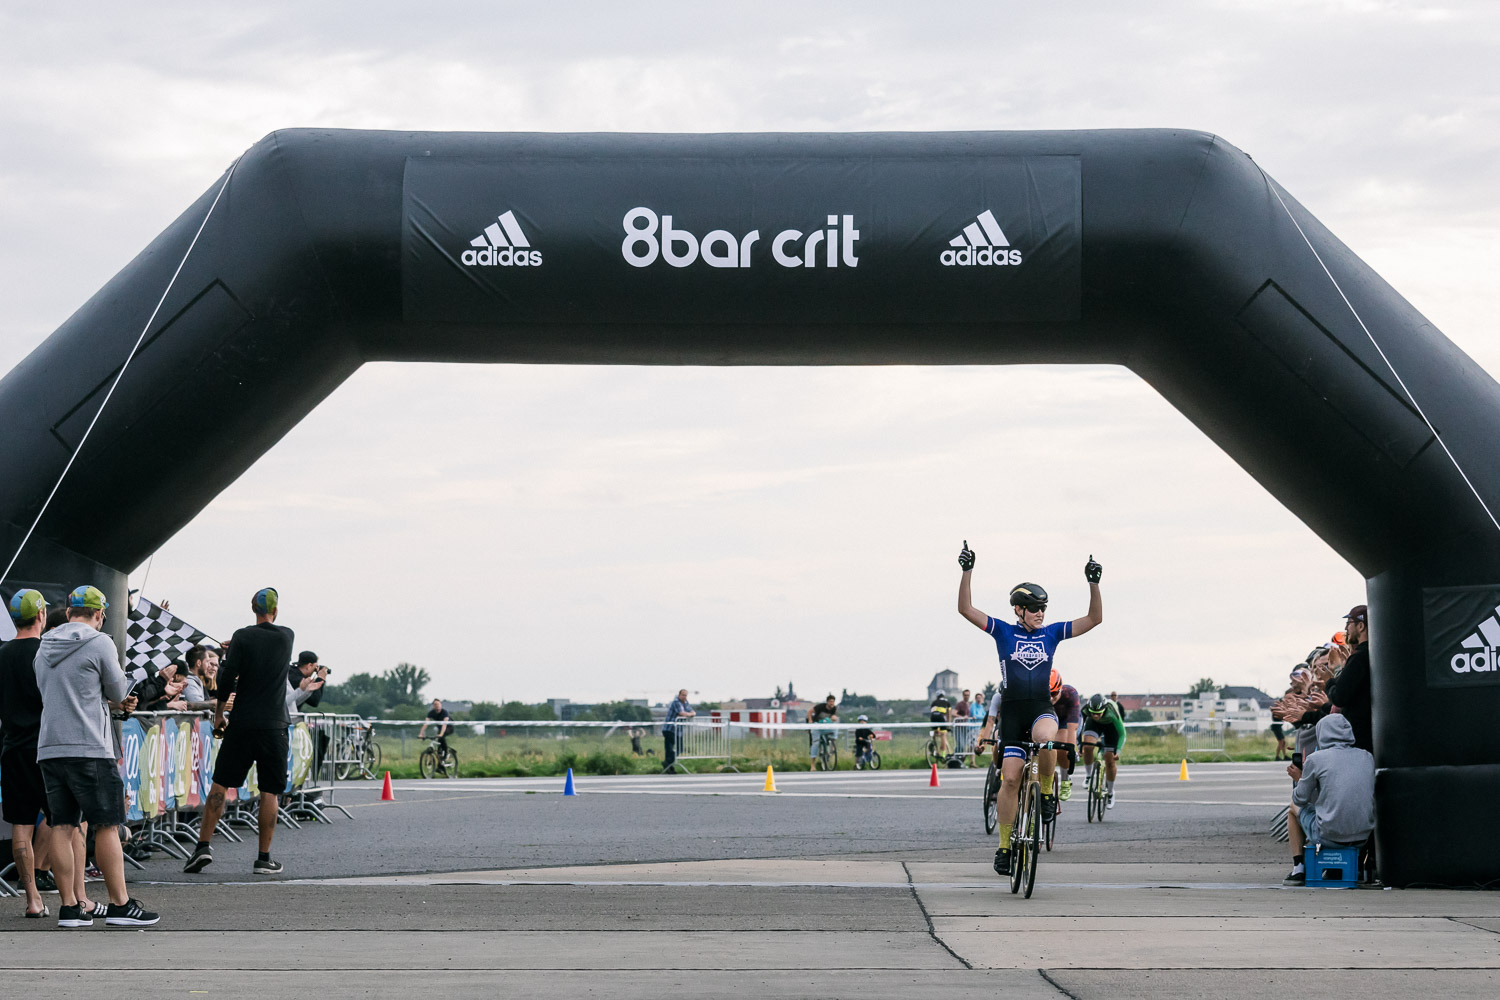 8bar-crit-fixed-gear-bike-race-stefanhaehnel-bestof-18